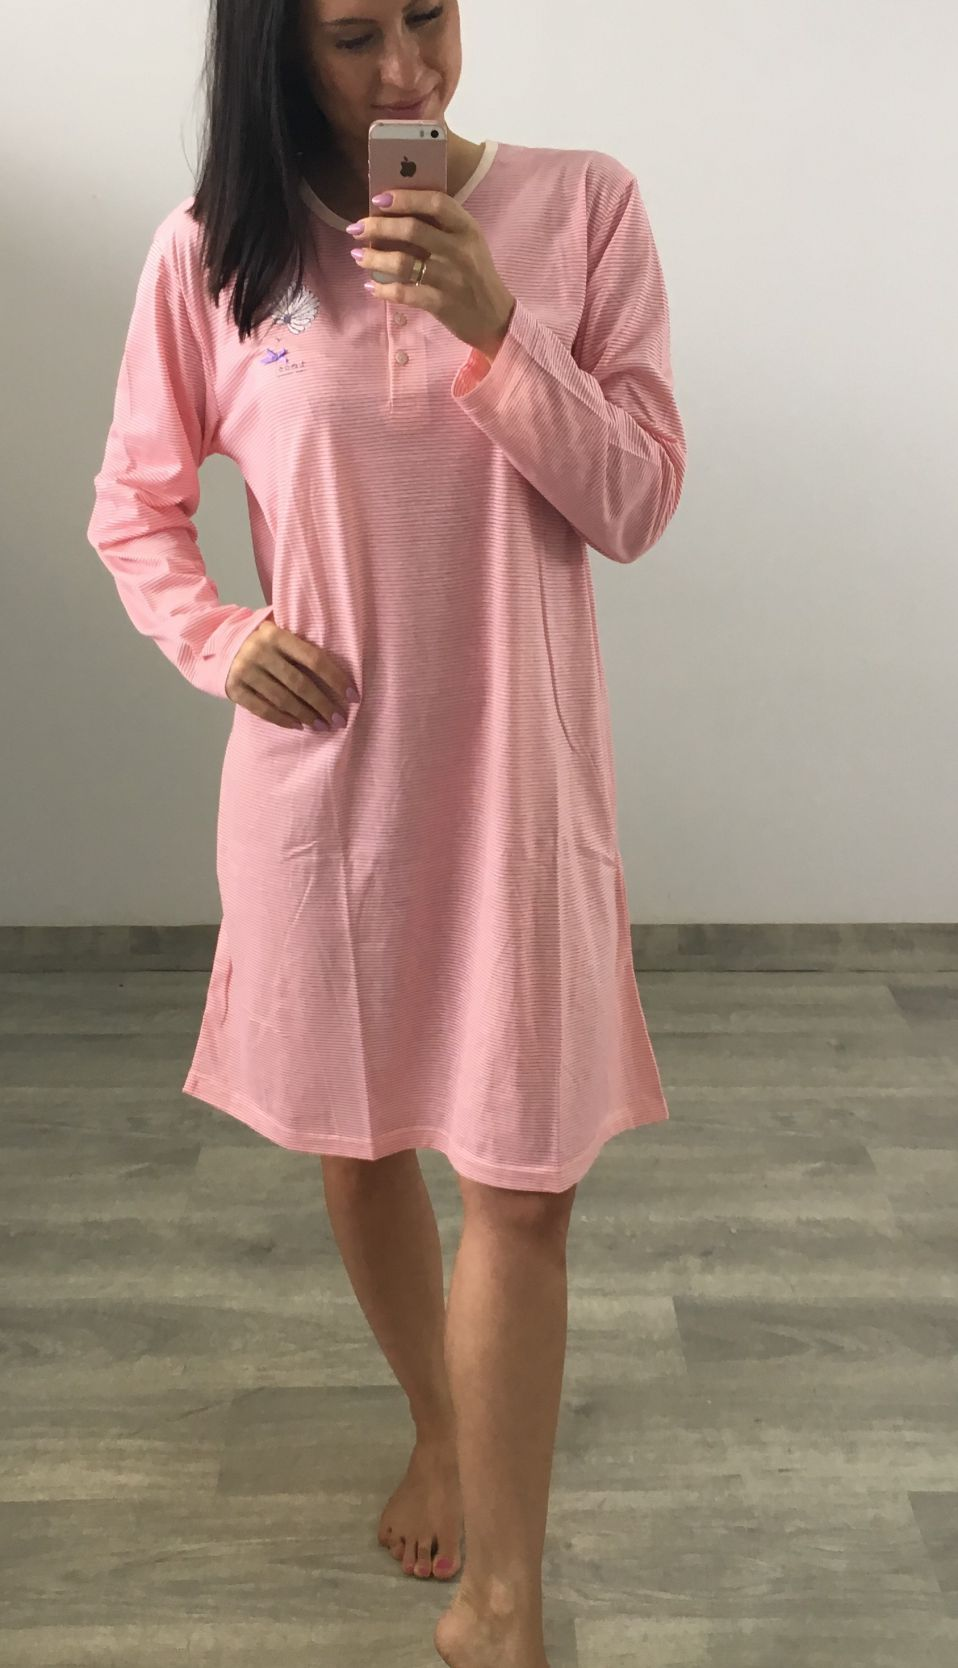 Nightgown Valerie Dream - LP8454